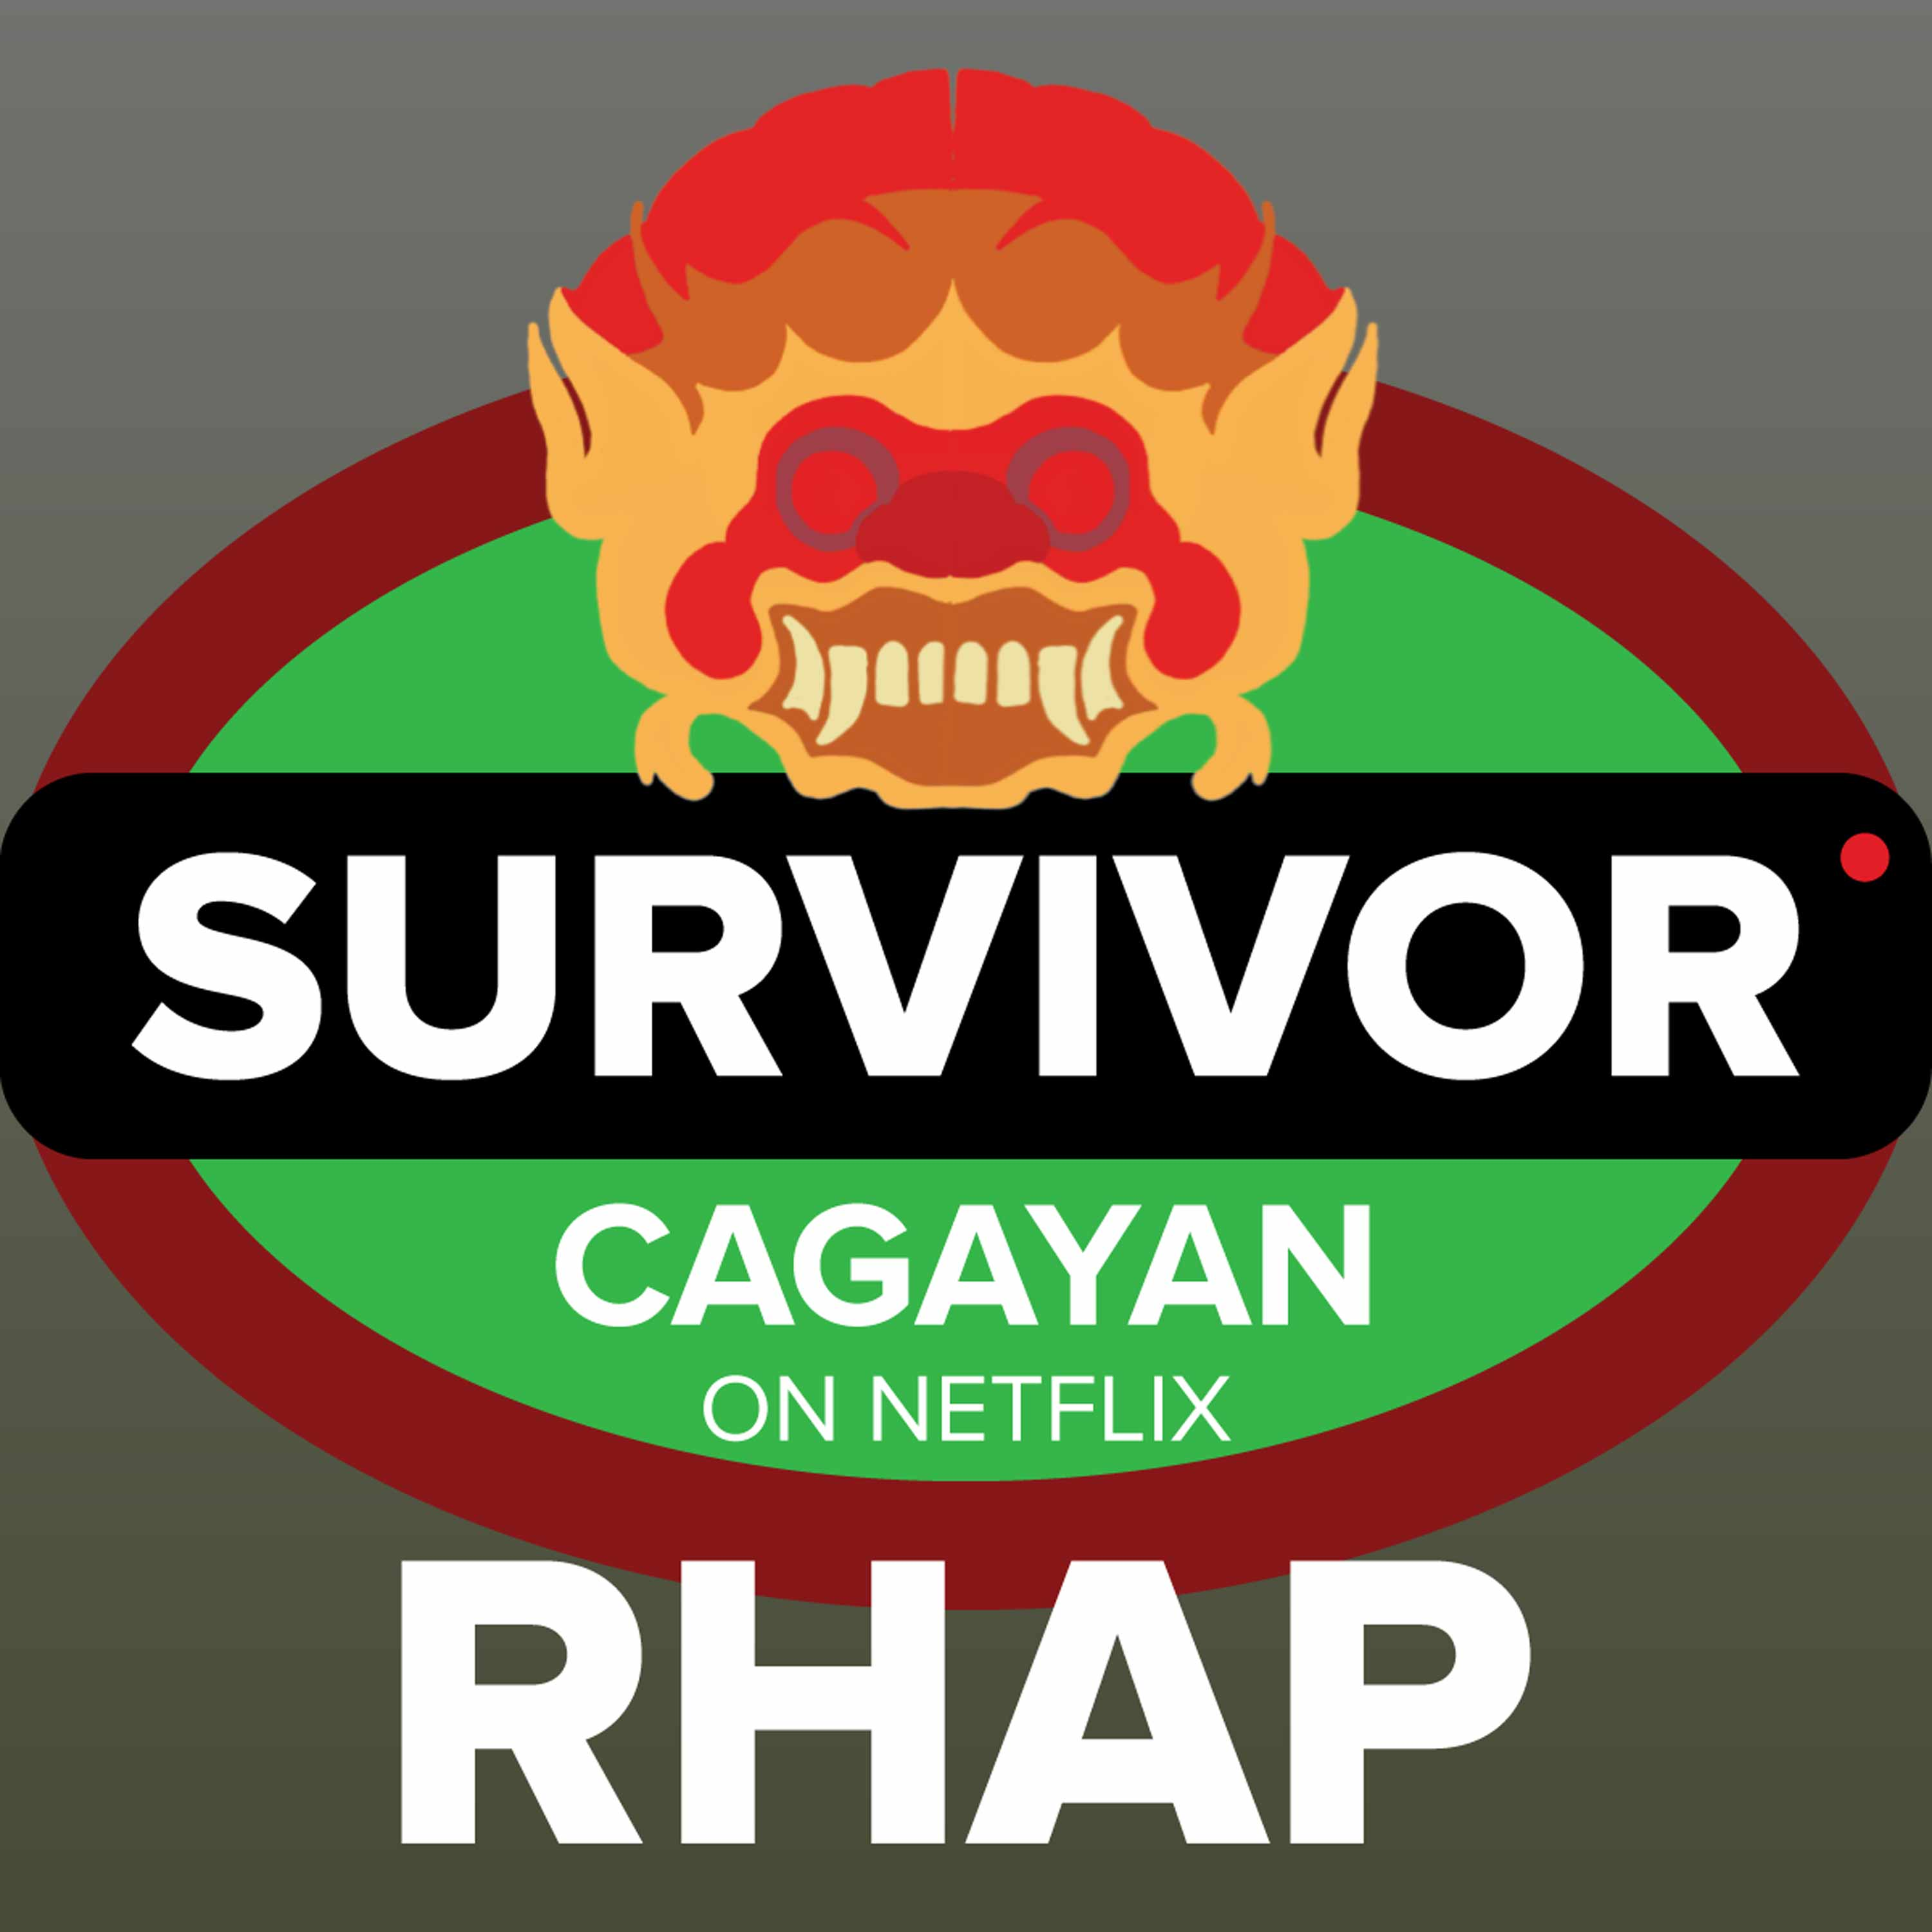 Survivor Cagayan Recaps for Netflix viewers from Rob Has A Podcast